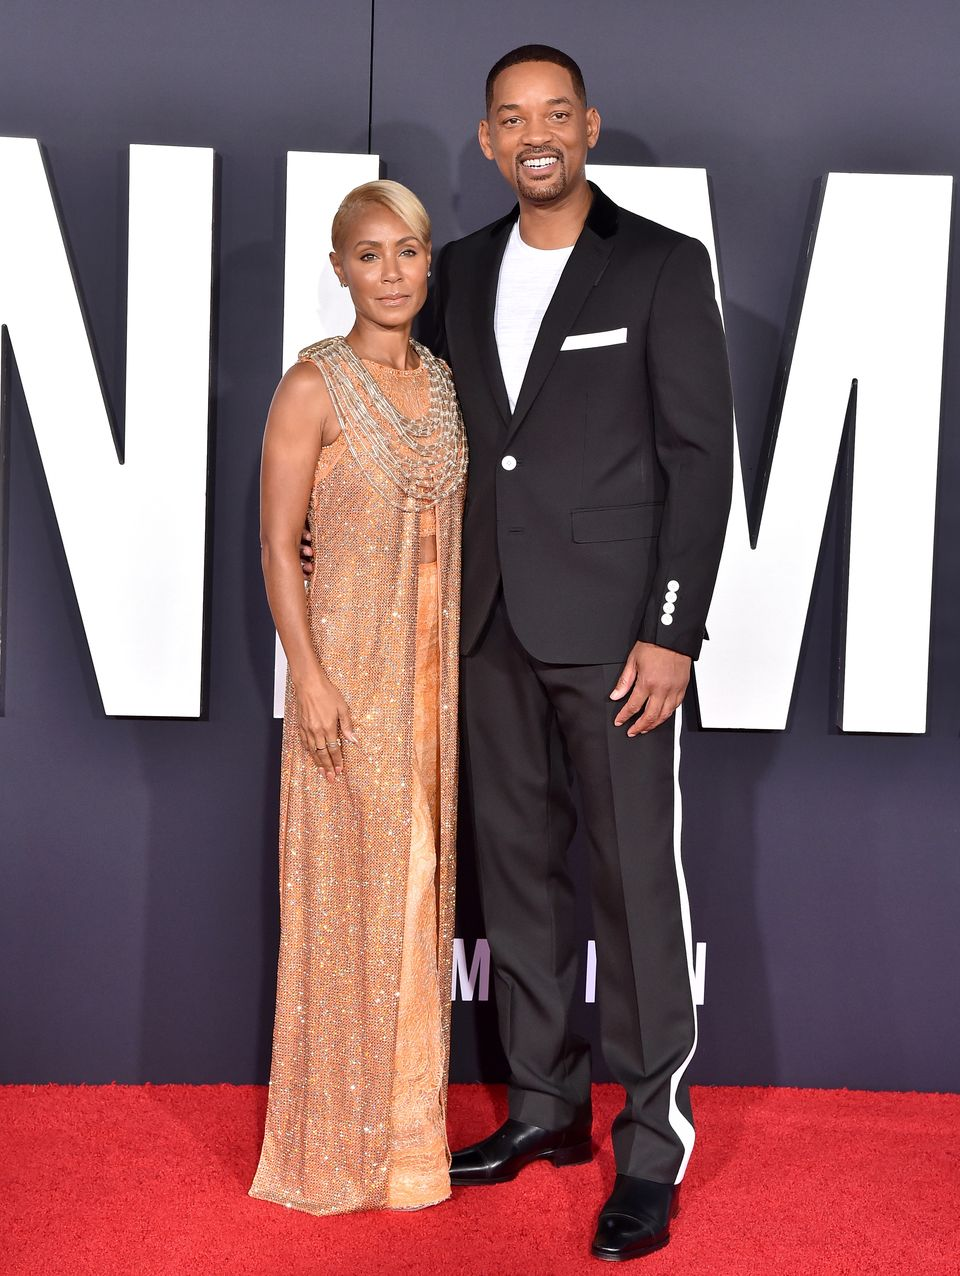 """Jada Pinkett-Smith and Will Smith attend Paramount Pictures' Premiere of """"Gemini Man"""" on October 06, 2019 in Hollywood, California. 